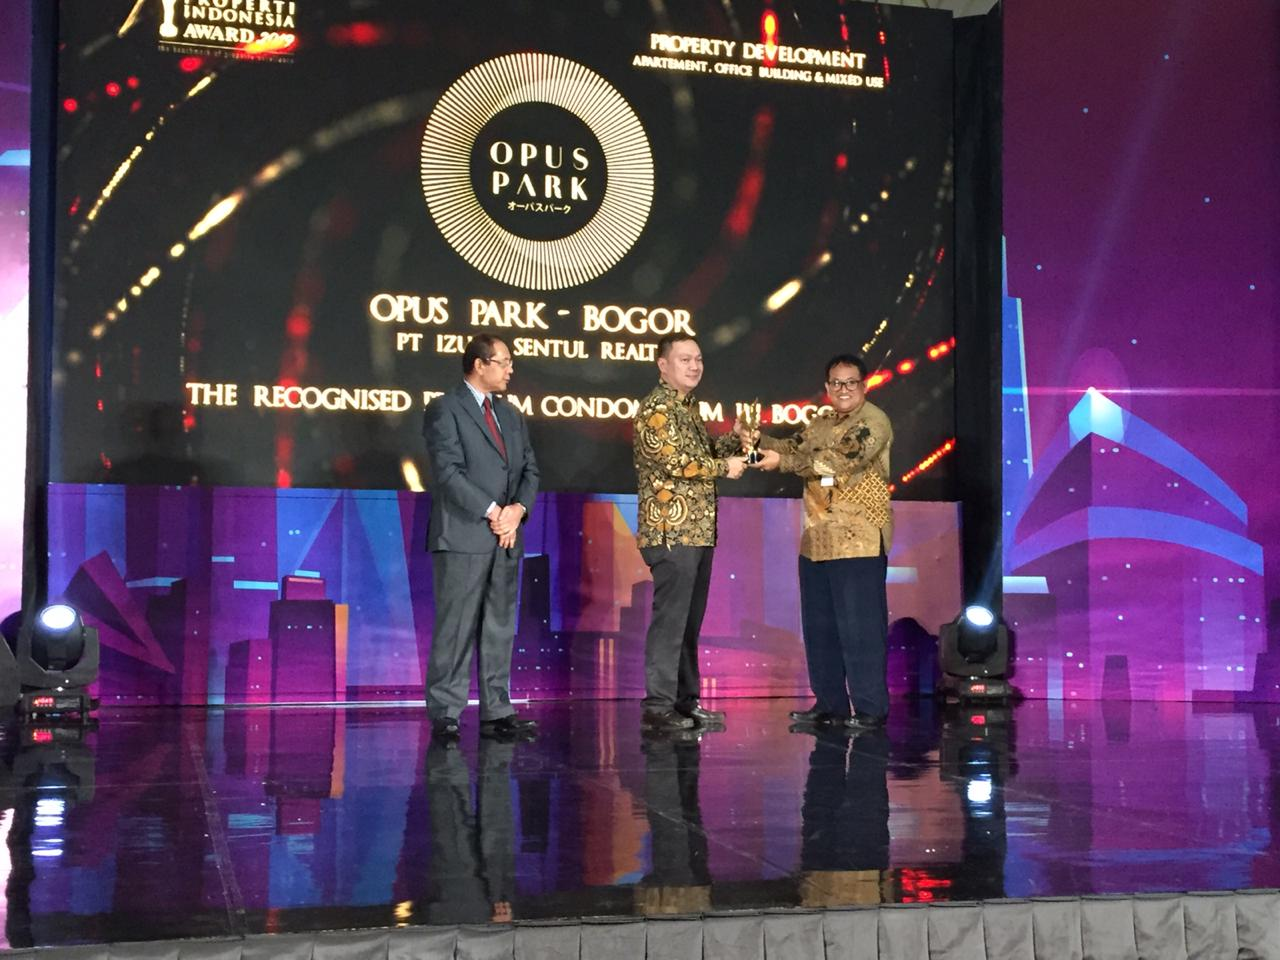 Opus Park Apartment won the Indonesia Property Award (PIA) 2019